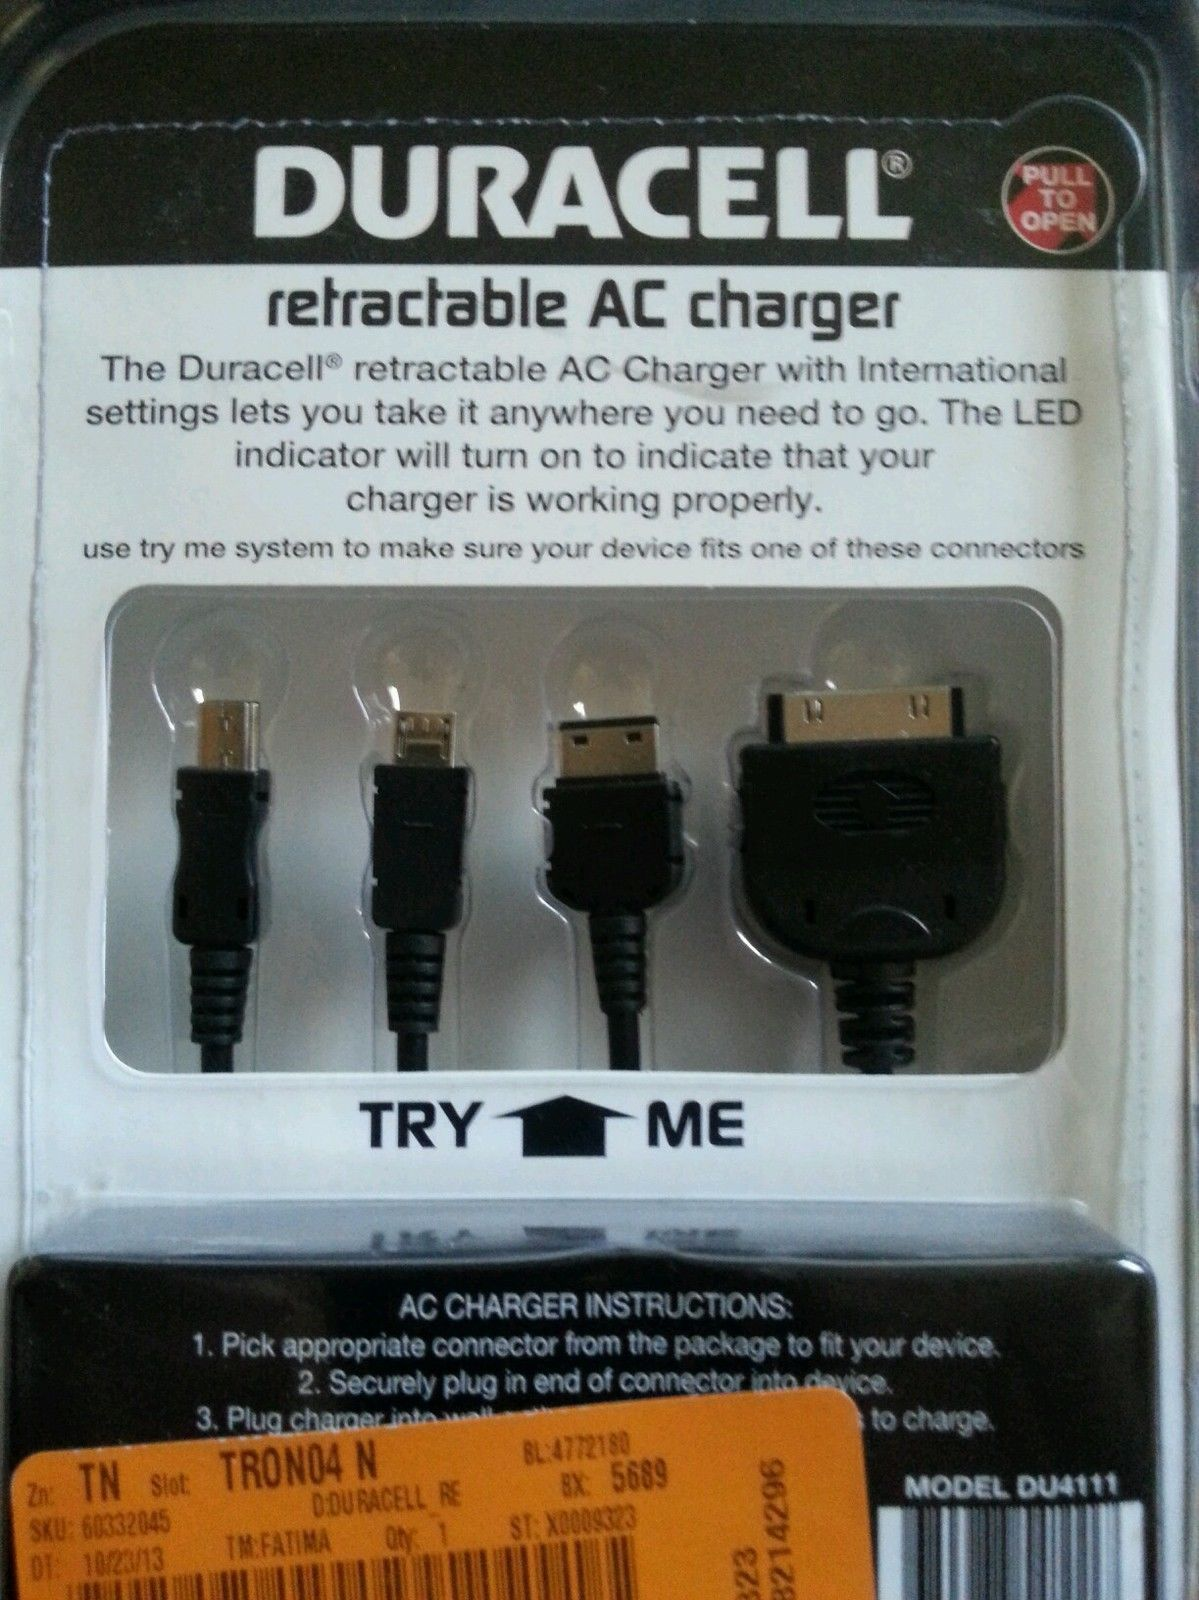 Duracell Retractable AC Charger for Mobile Devices - DU4111